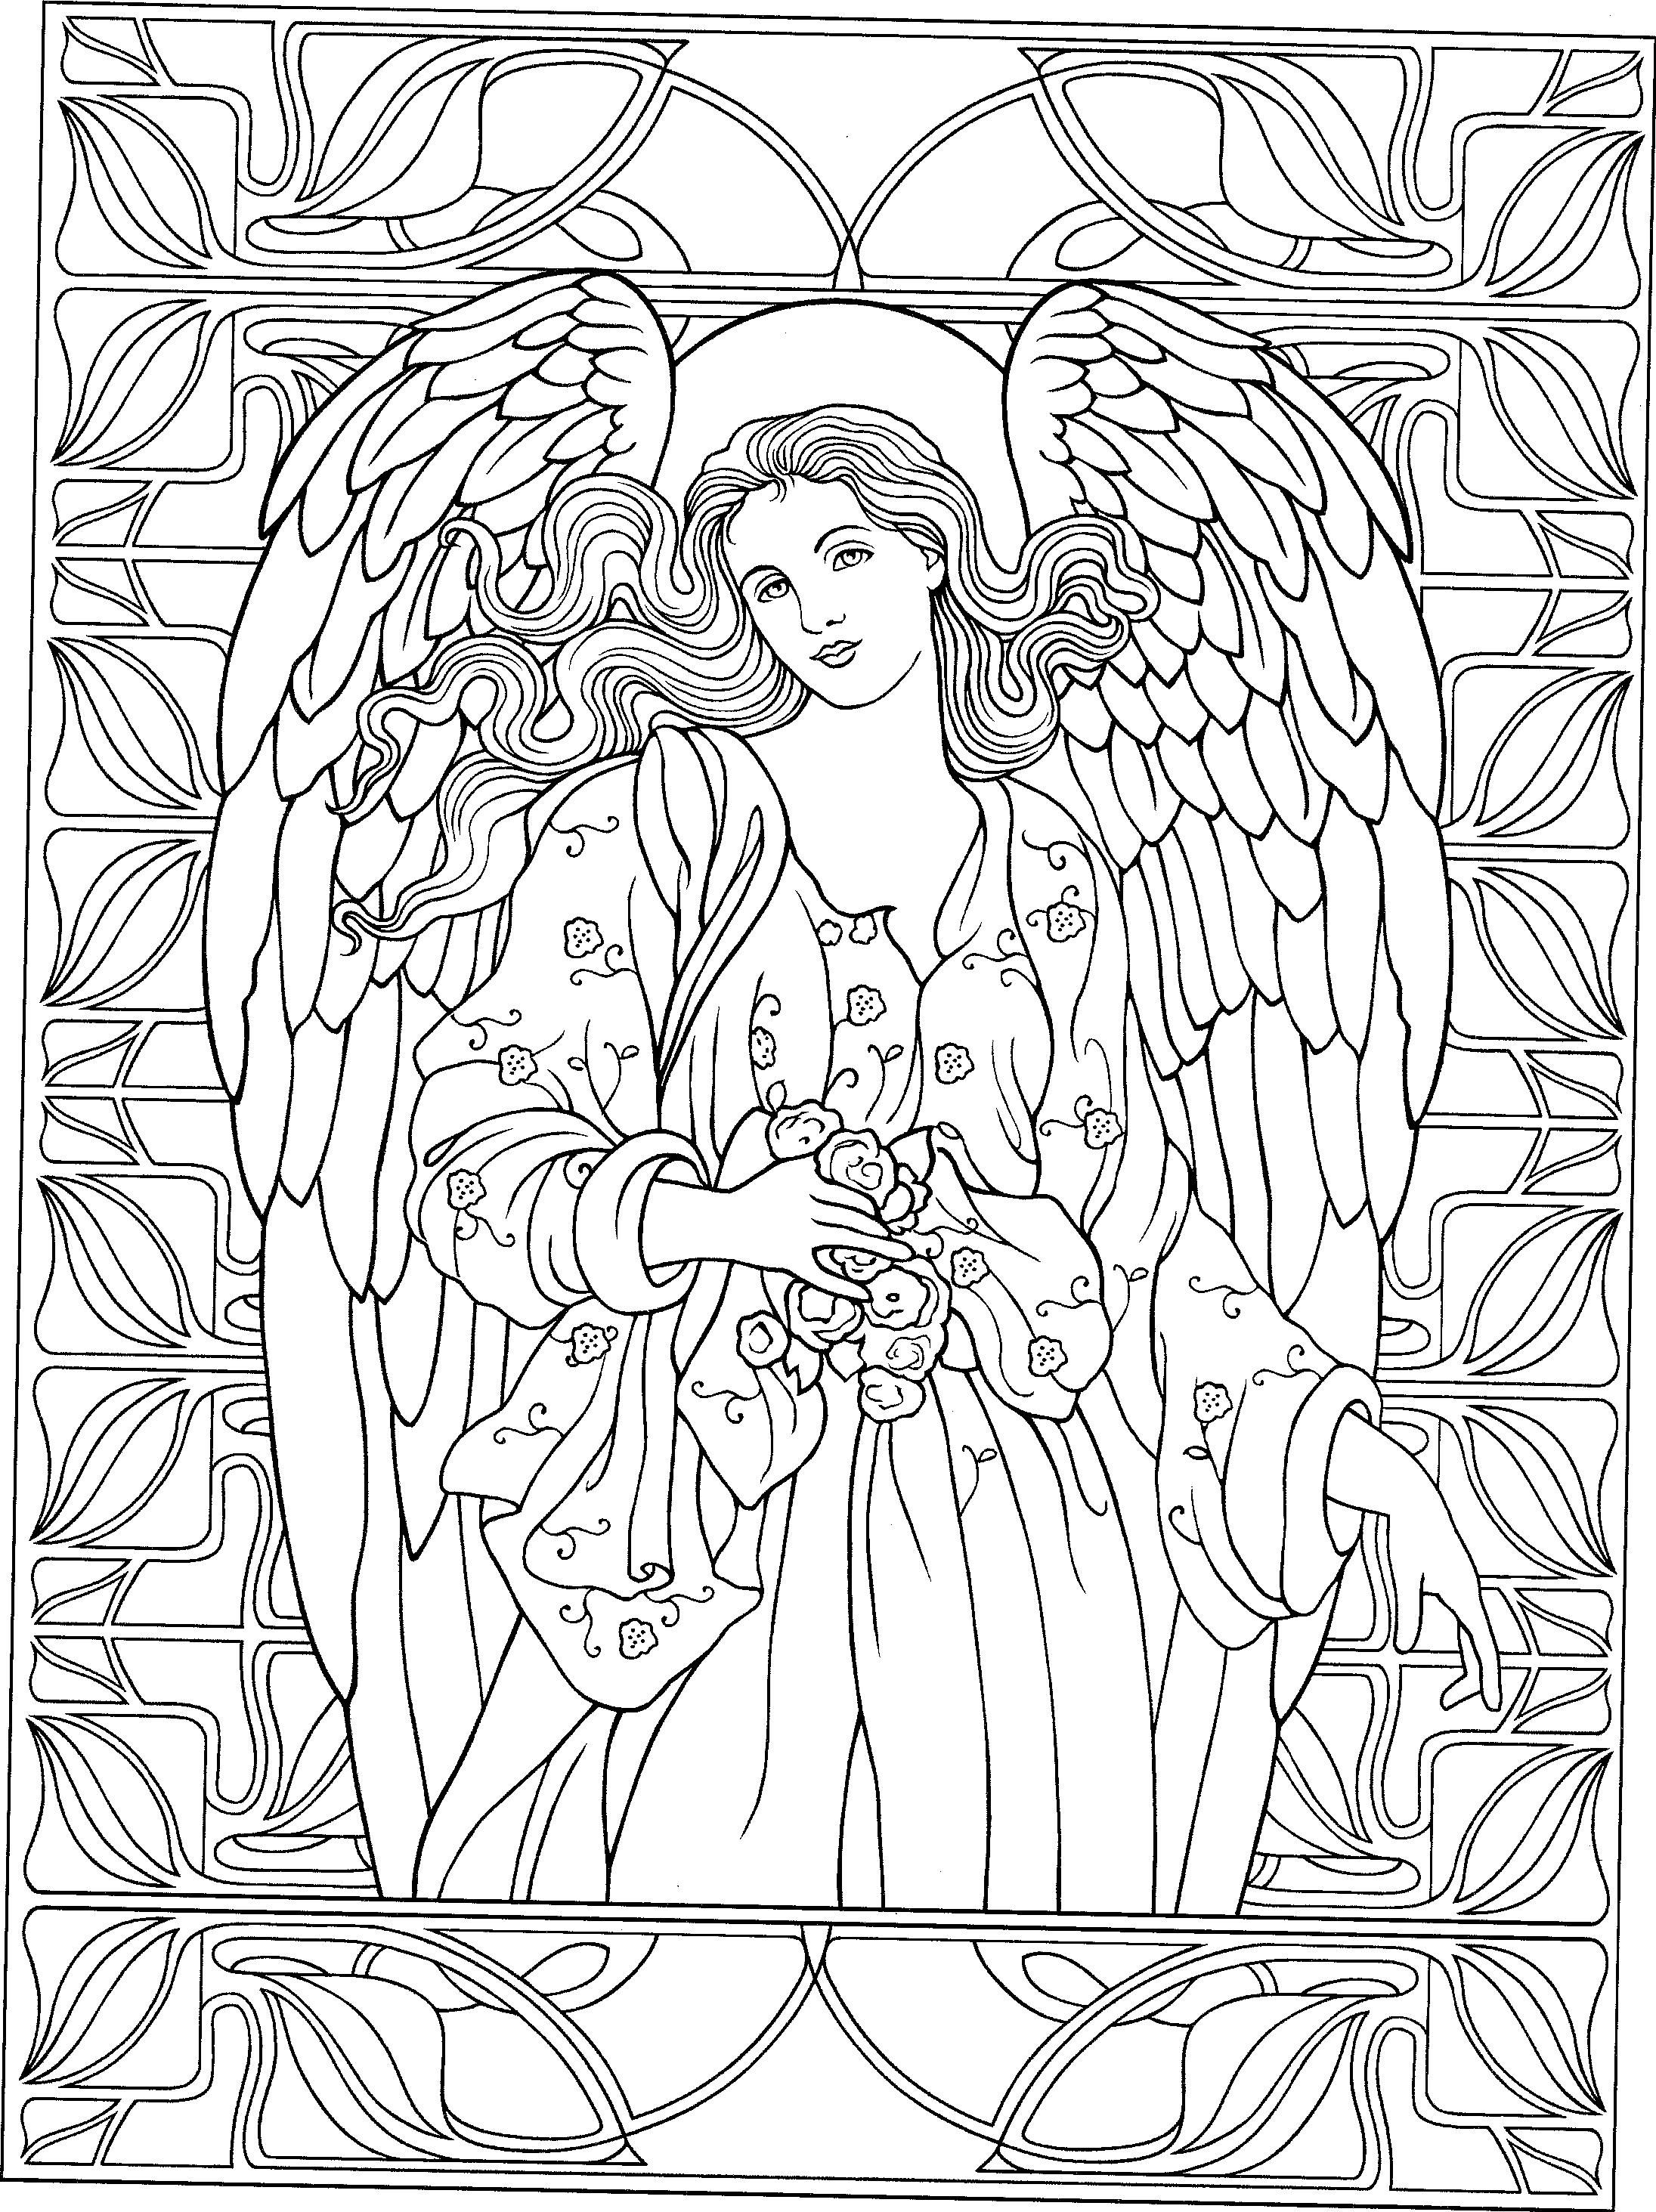 angel coloring pages for adults free printable angel coloring pages for kids cool2bkids pages coloring for angel adults